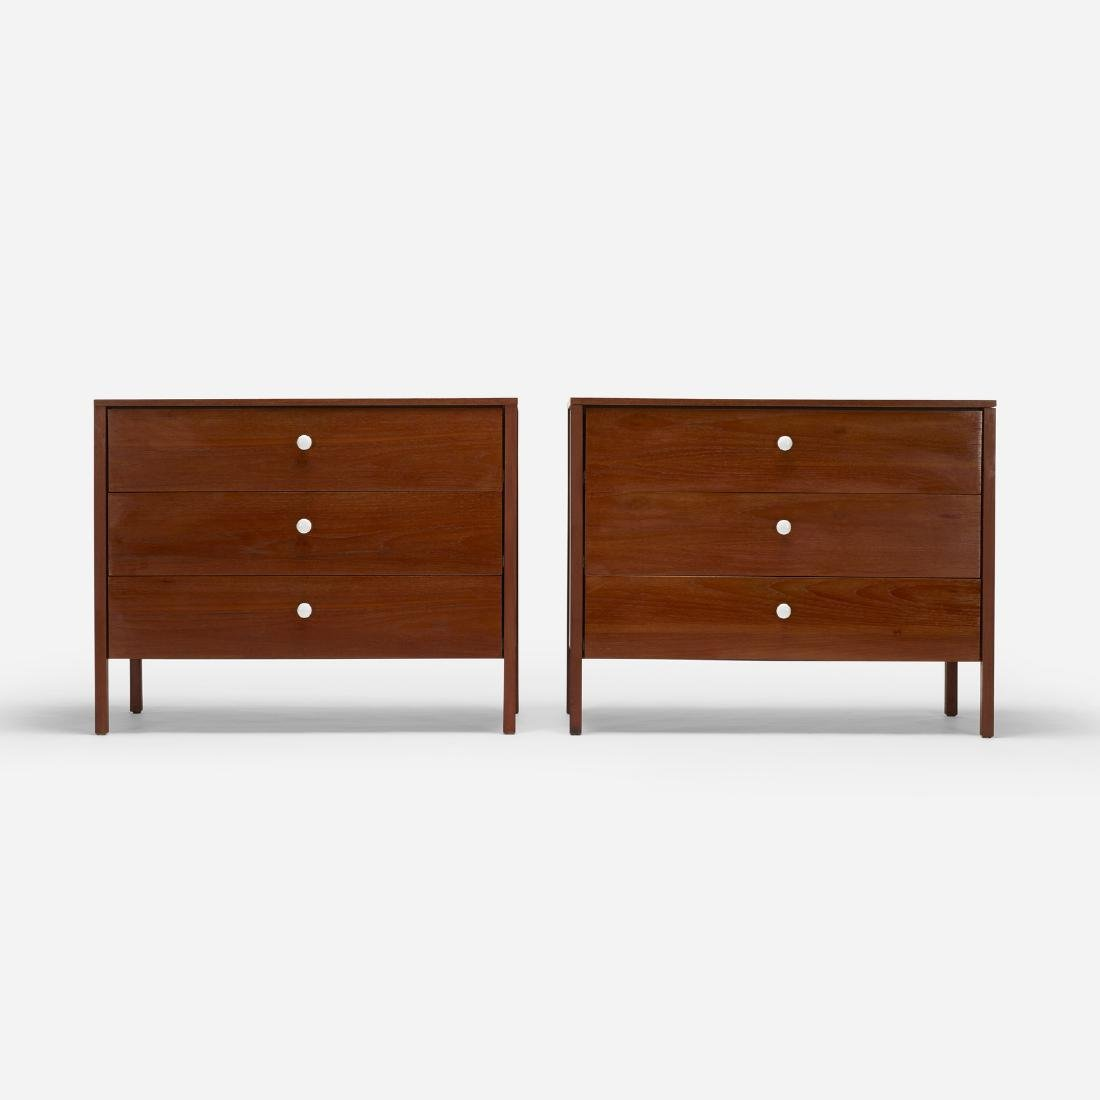 Florence Knoll, cabinets, pair